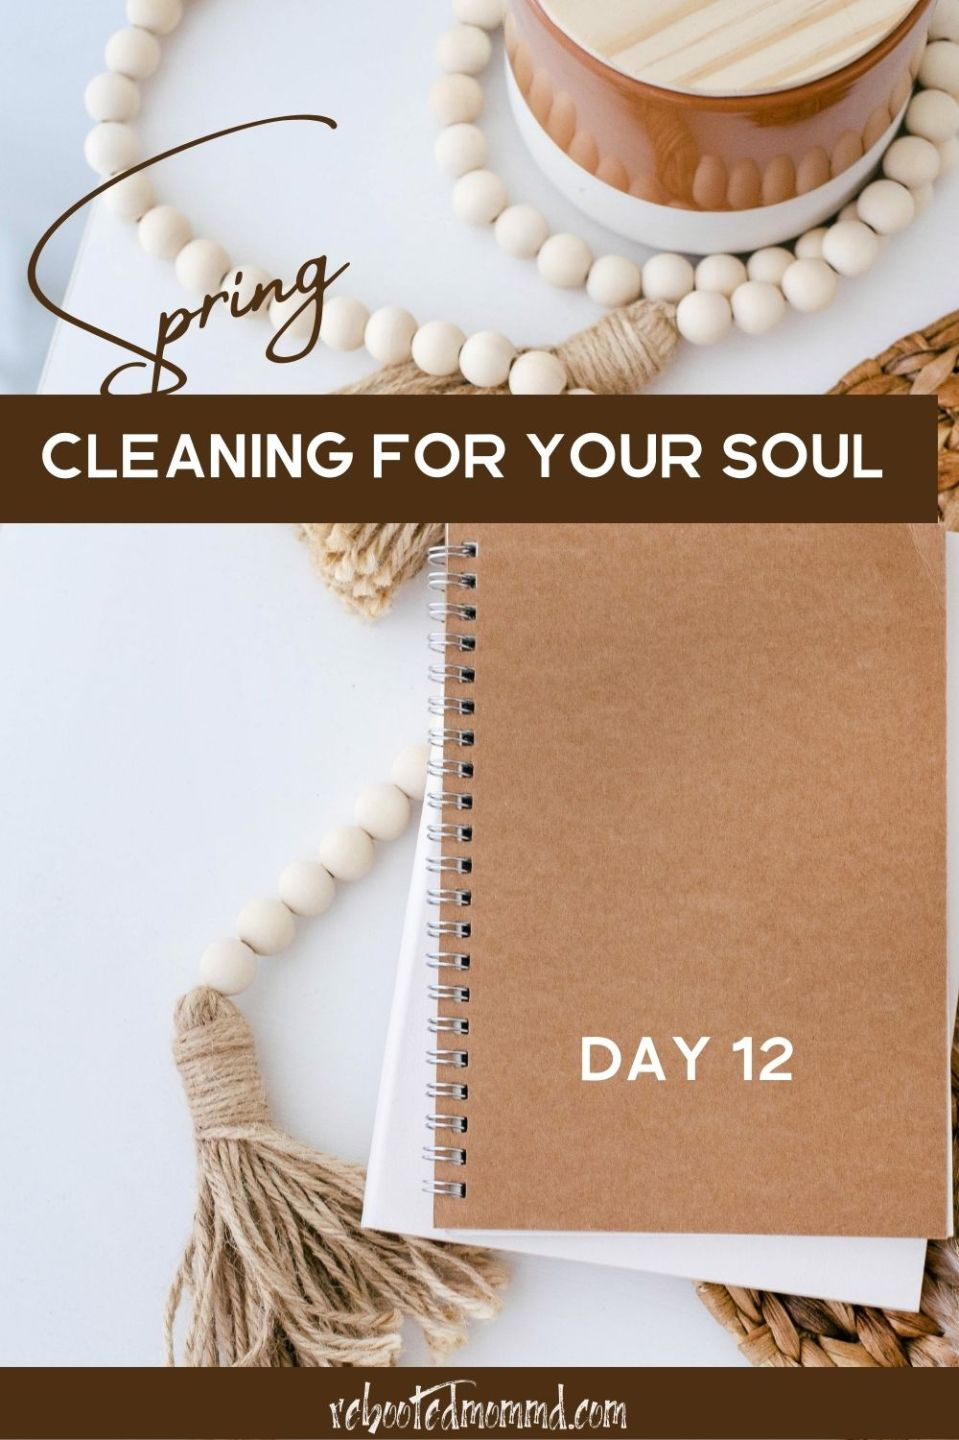 Spring Cleaning for Your Soul, Day 12: Cleanse Your Soul